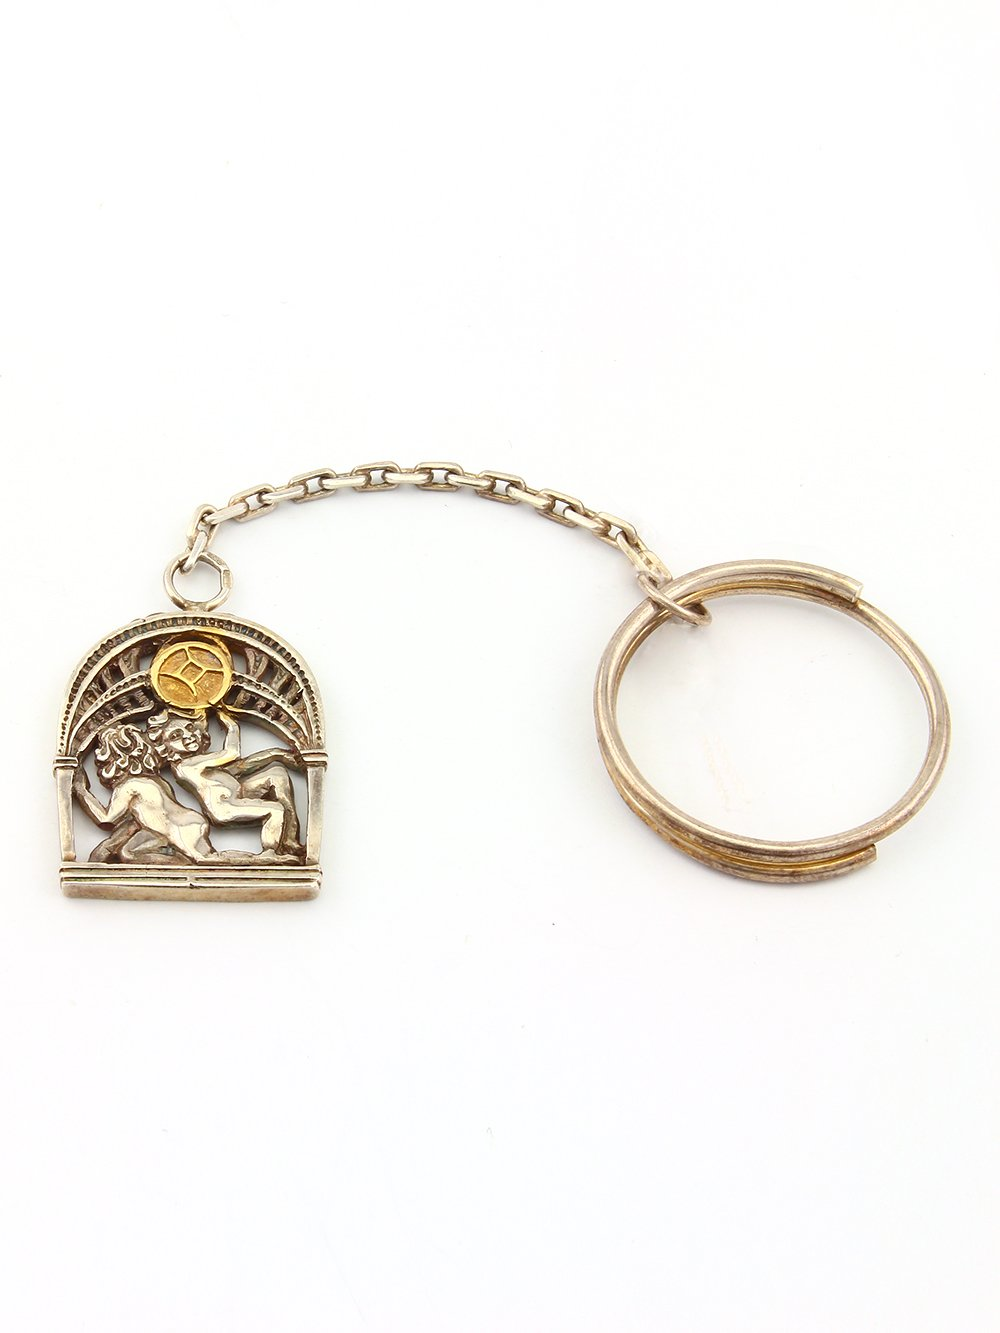 "Silver Key chain with Signs of the Zodiac ""Gemini"""